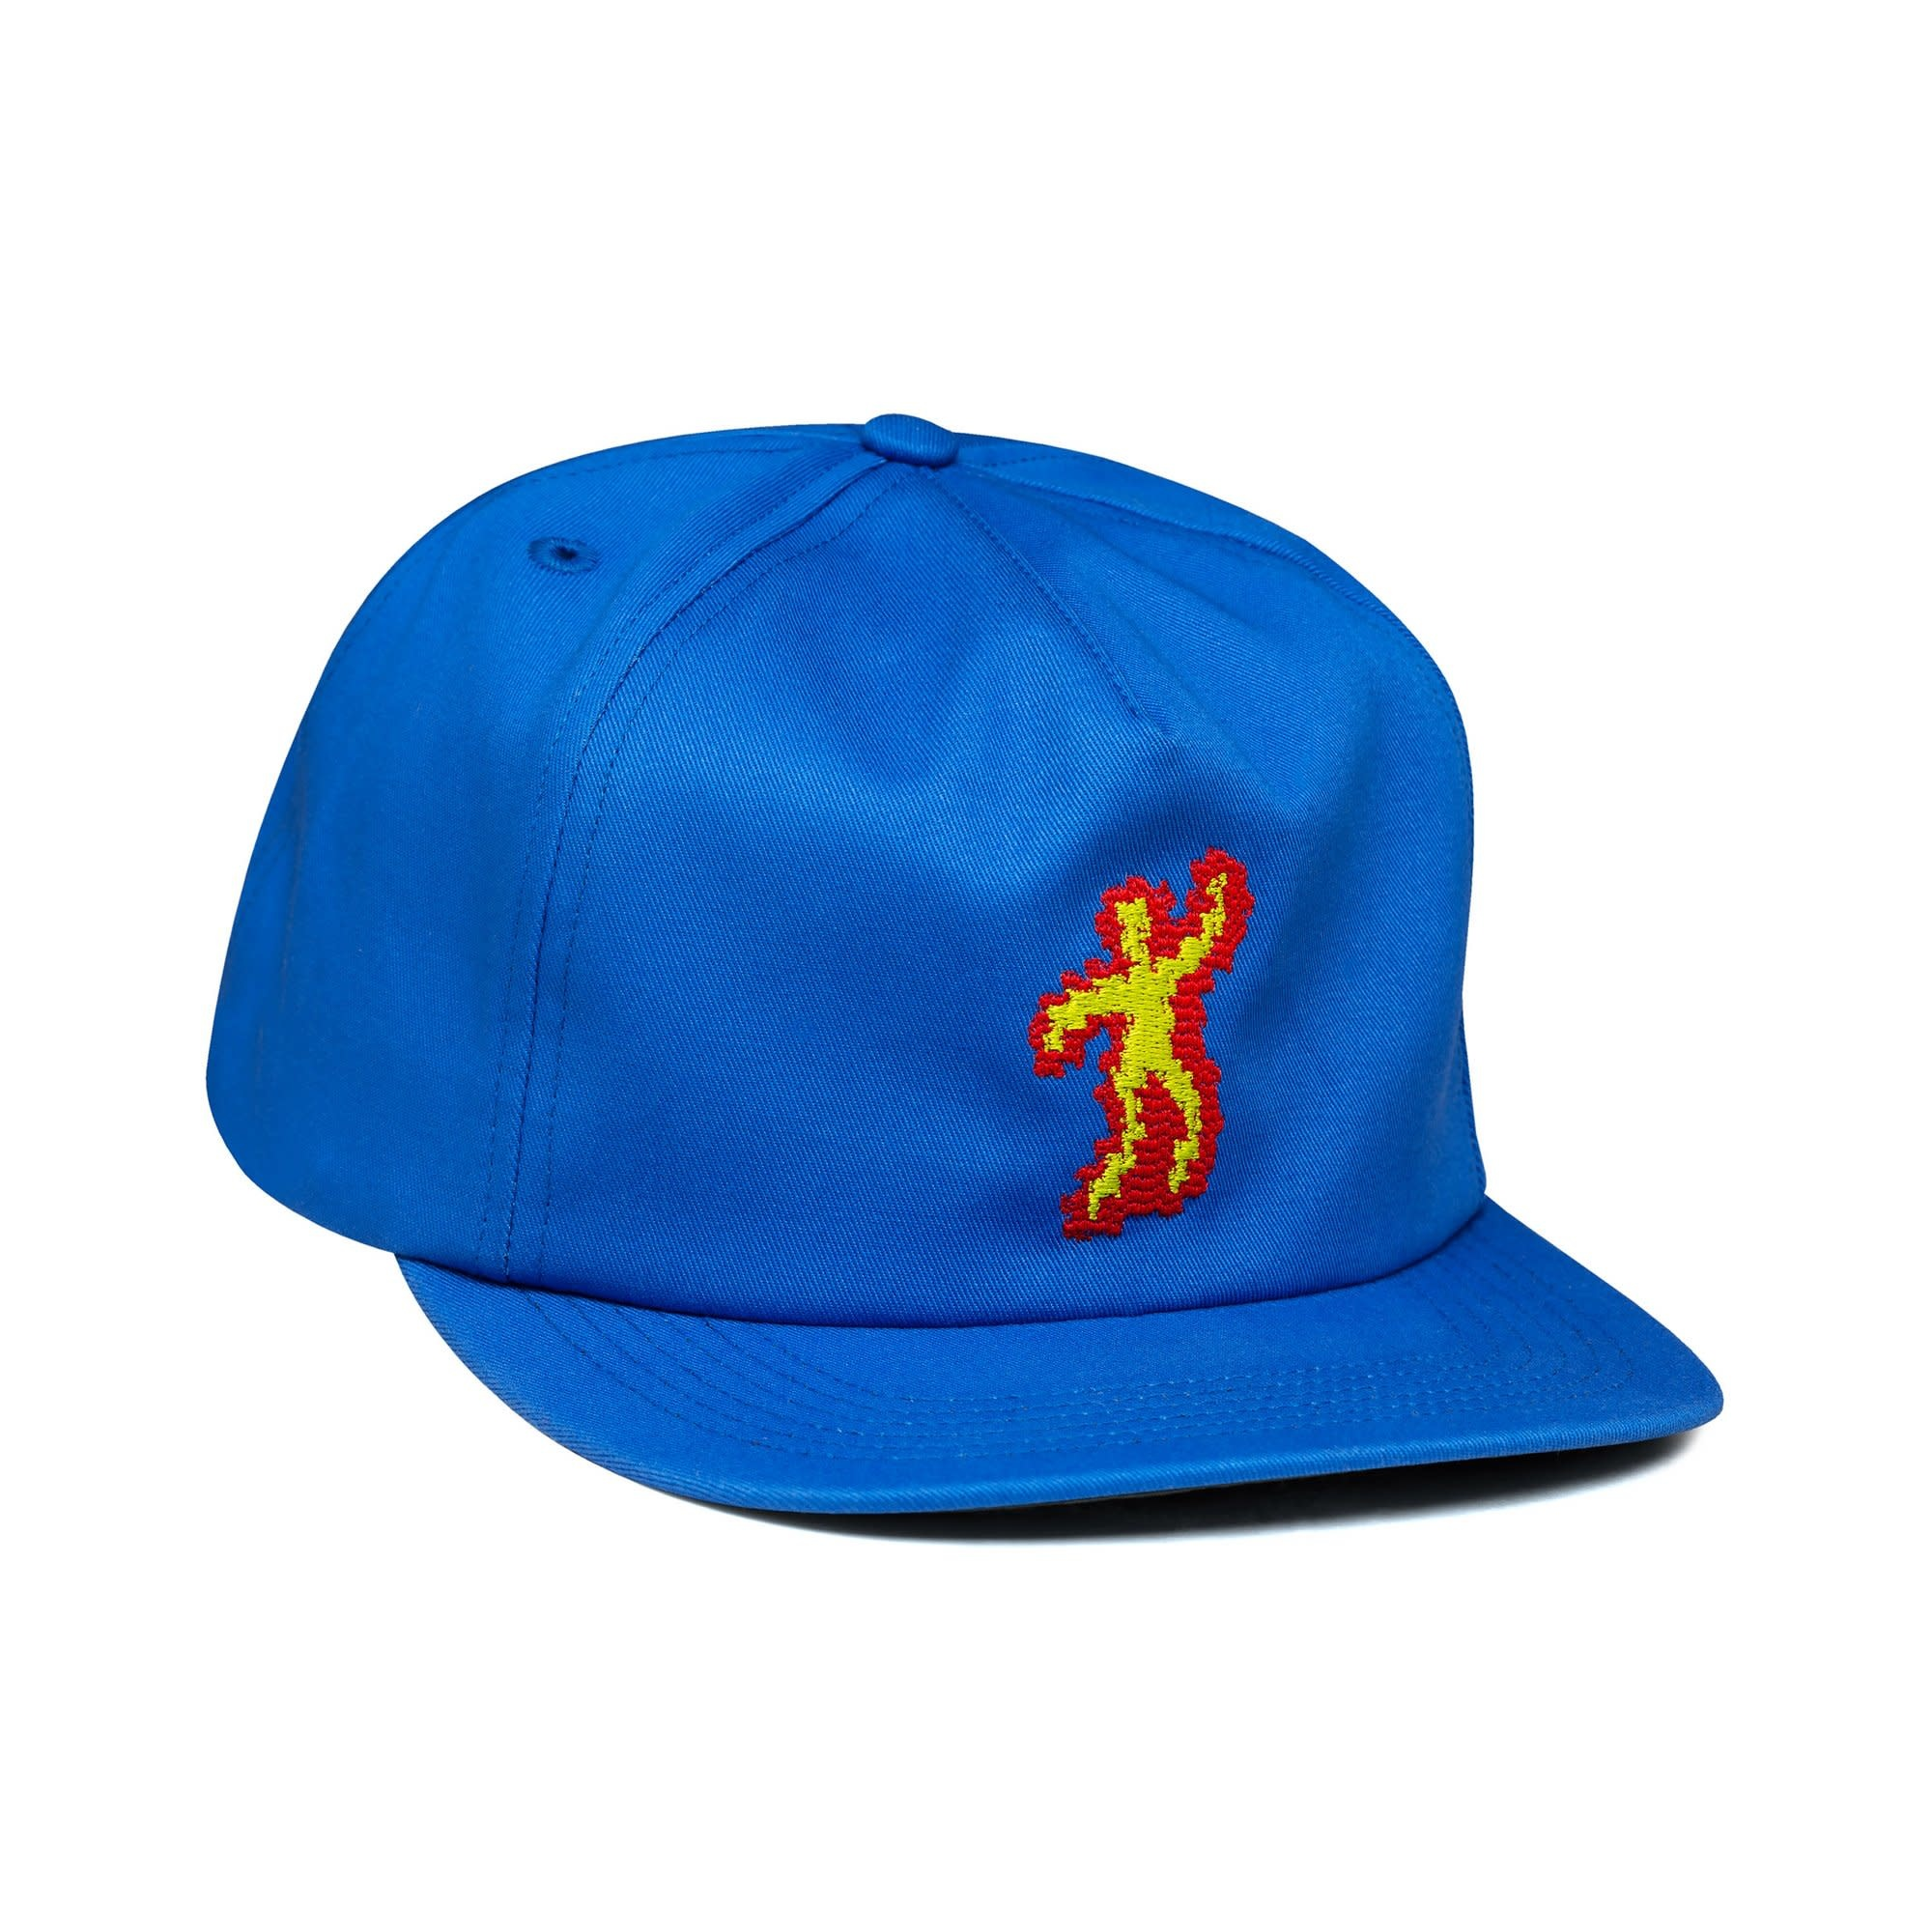 CallMe917 Scorched Hat Royal